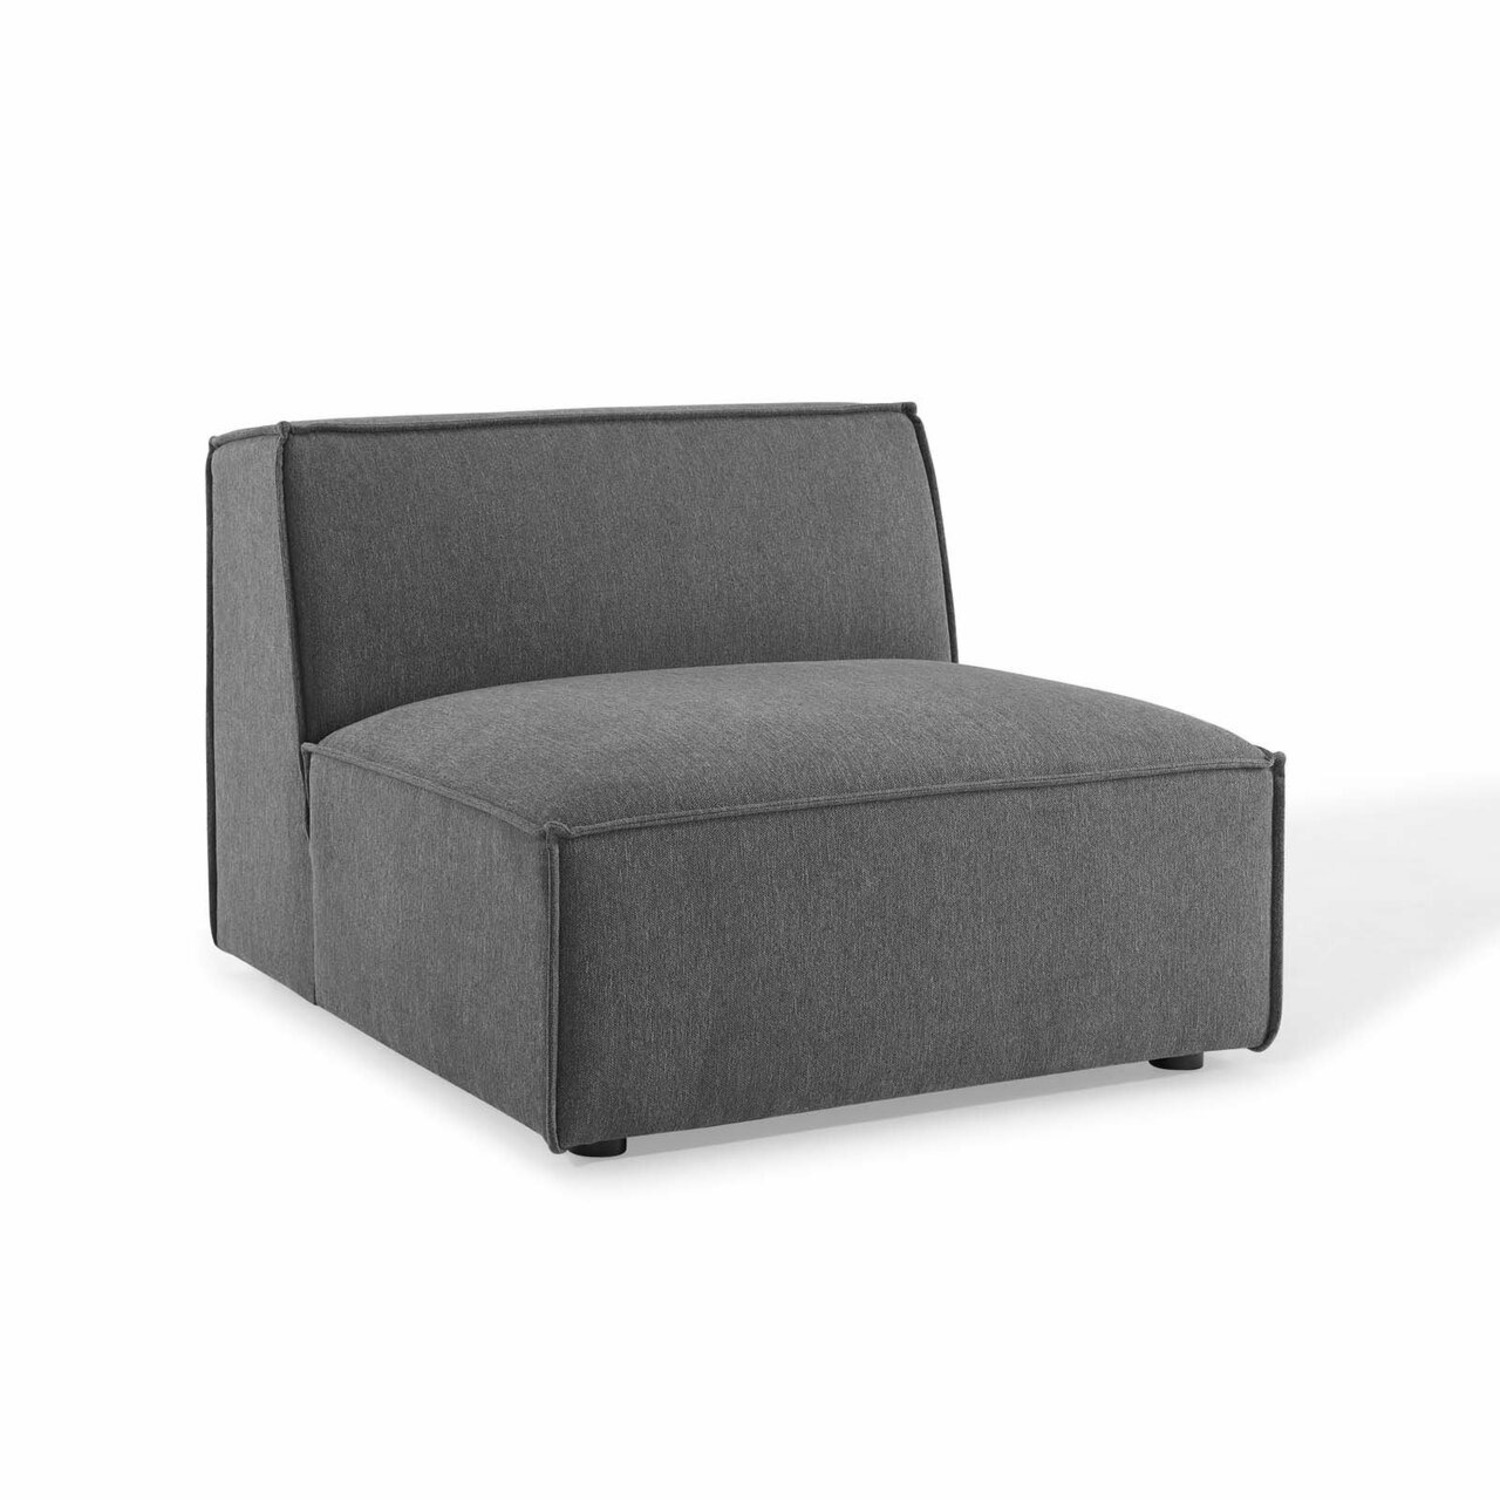 4-Piece Sectional Sofa In Charcoal Fabric Finish - image-6